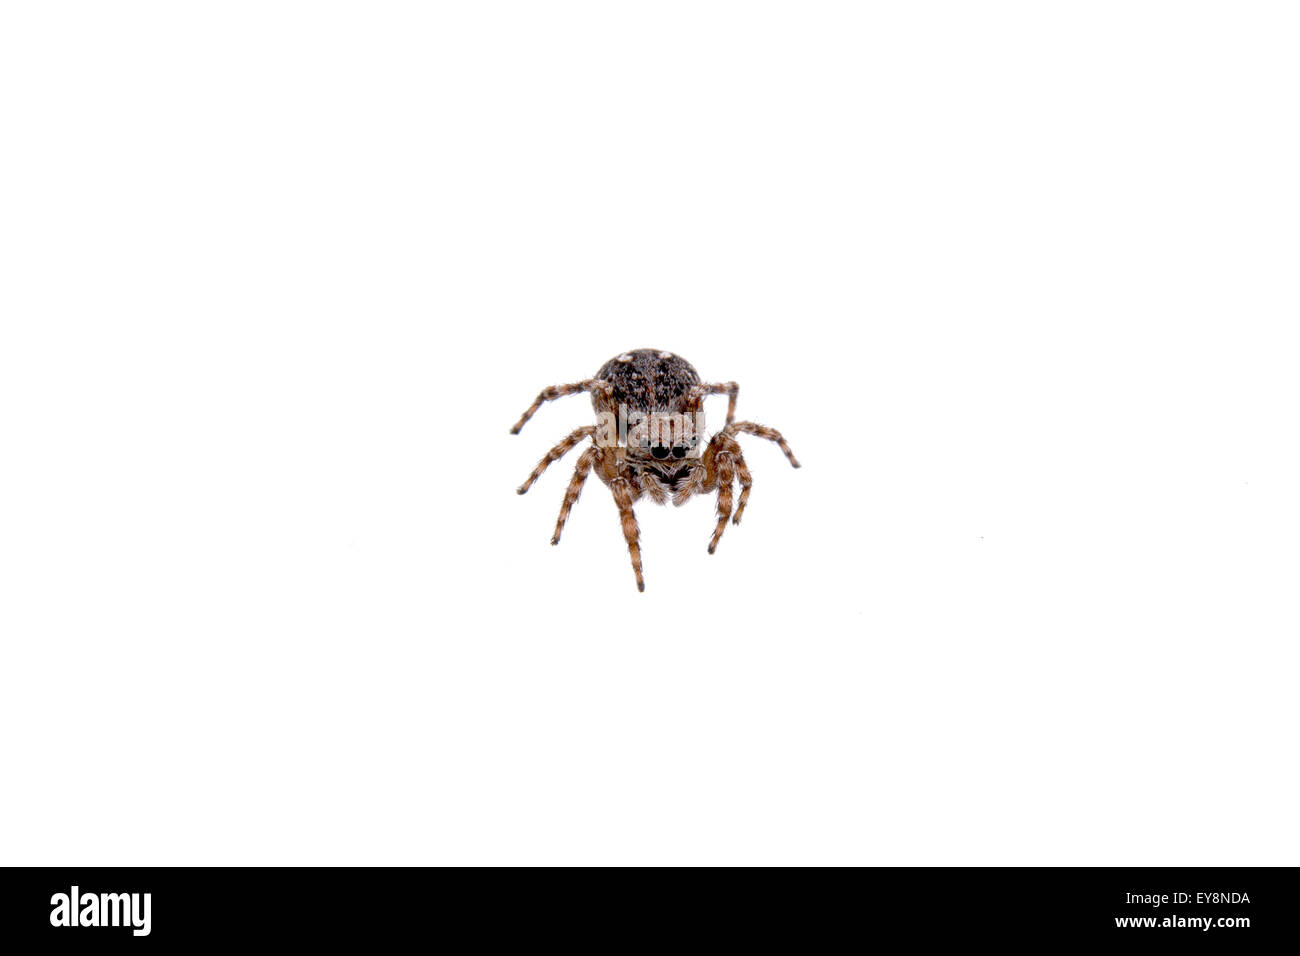 Brown spider isolated on a white background - Stock Image